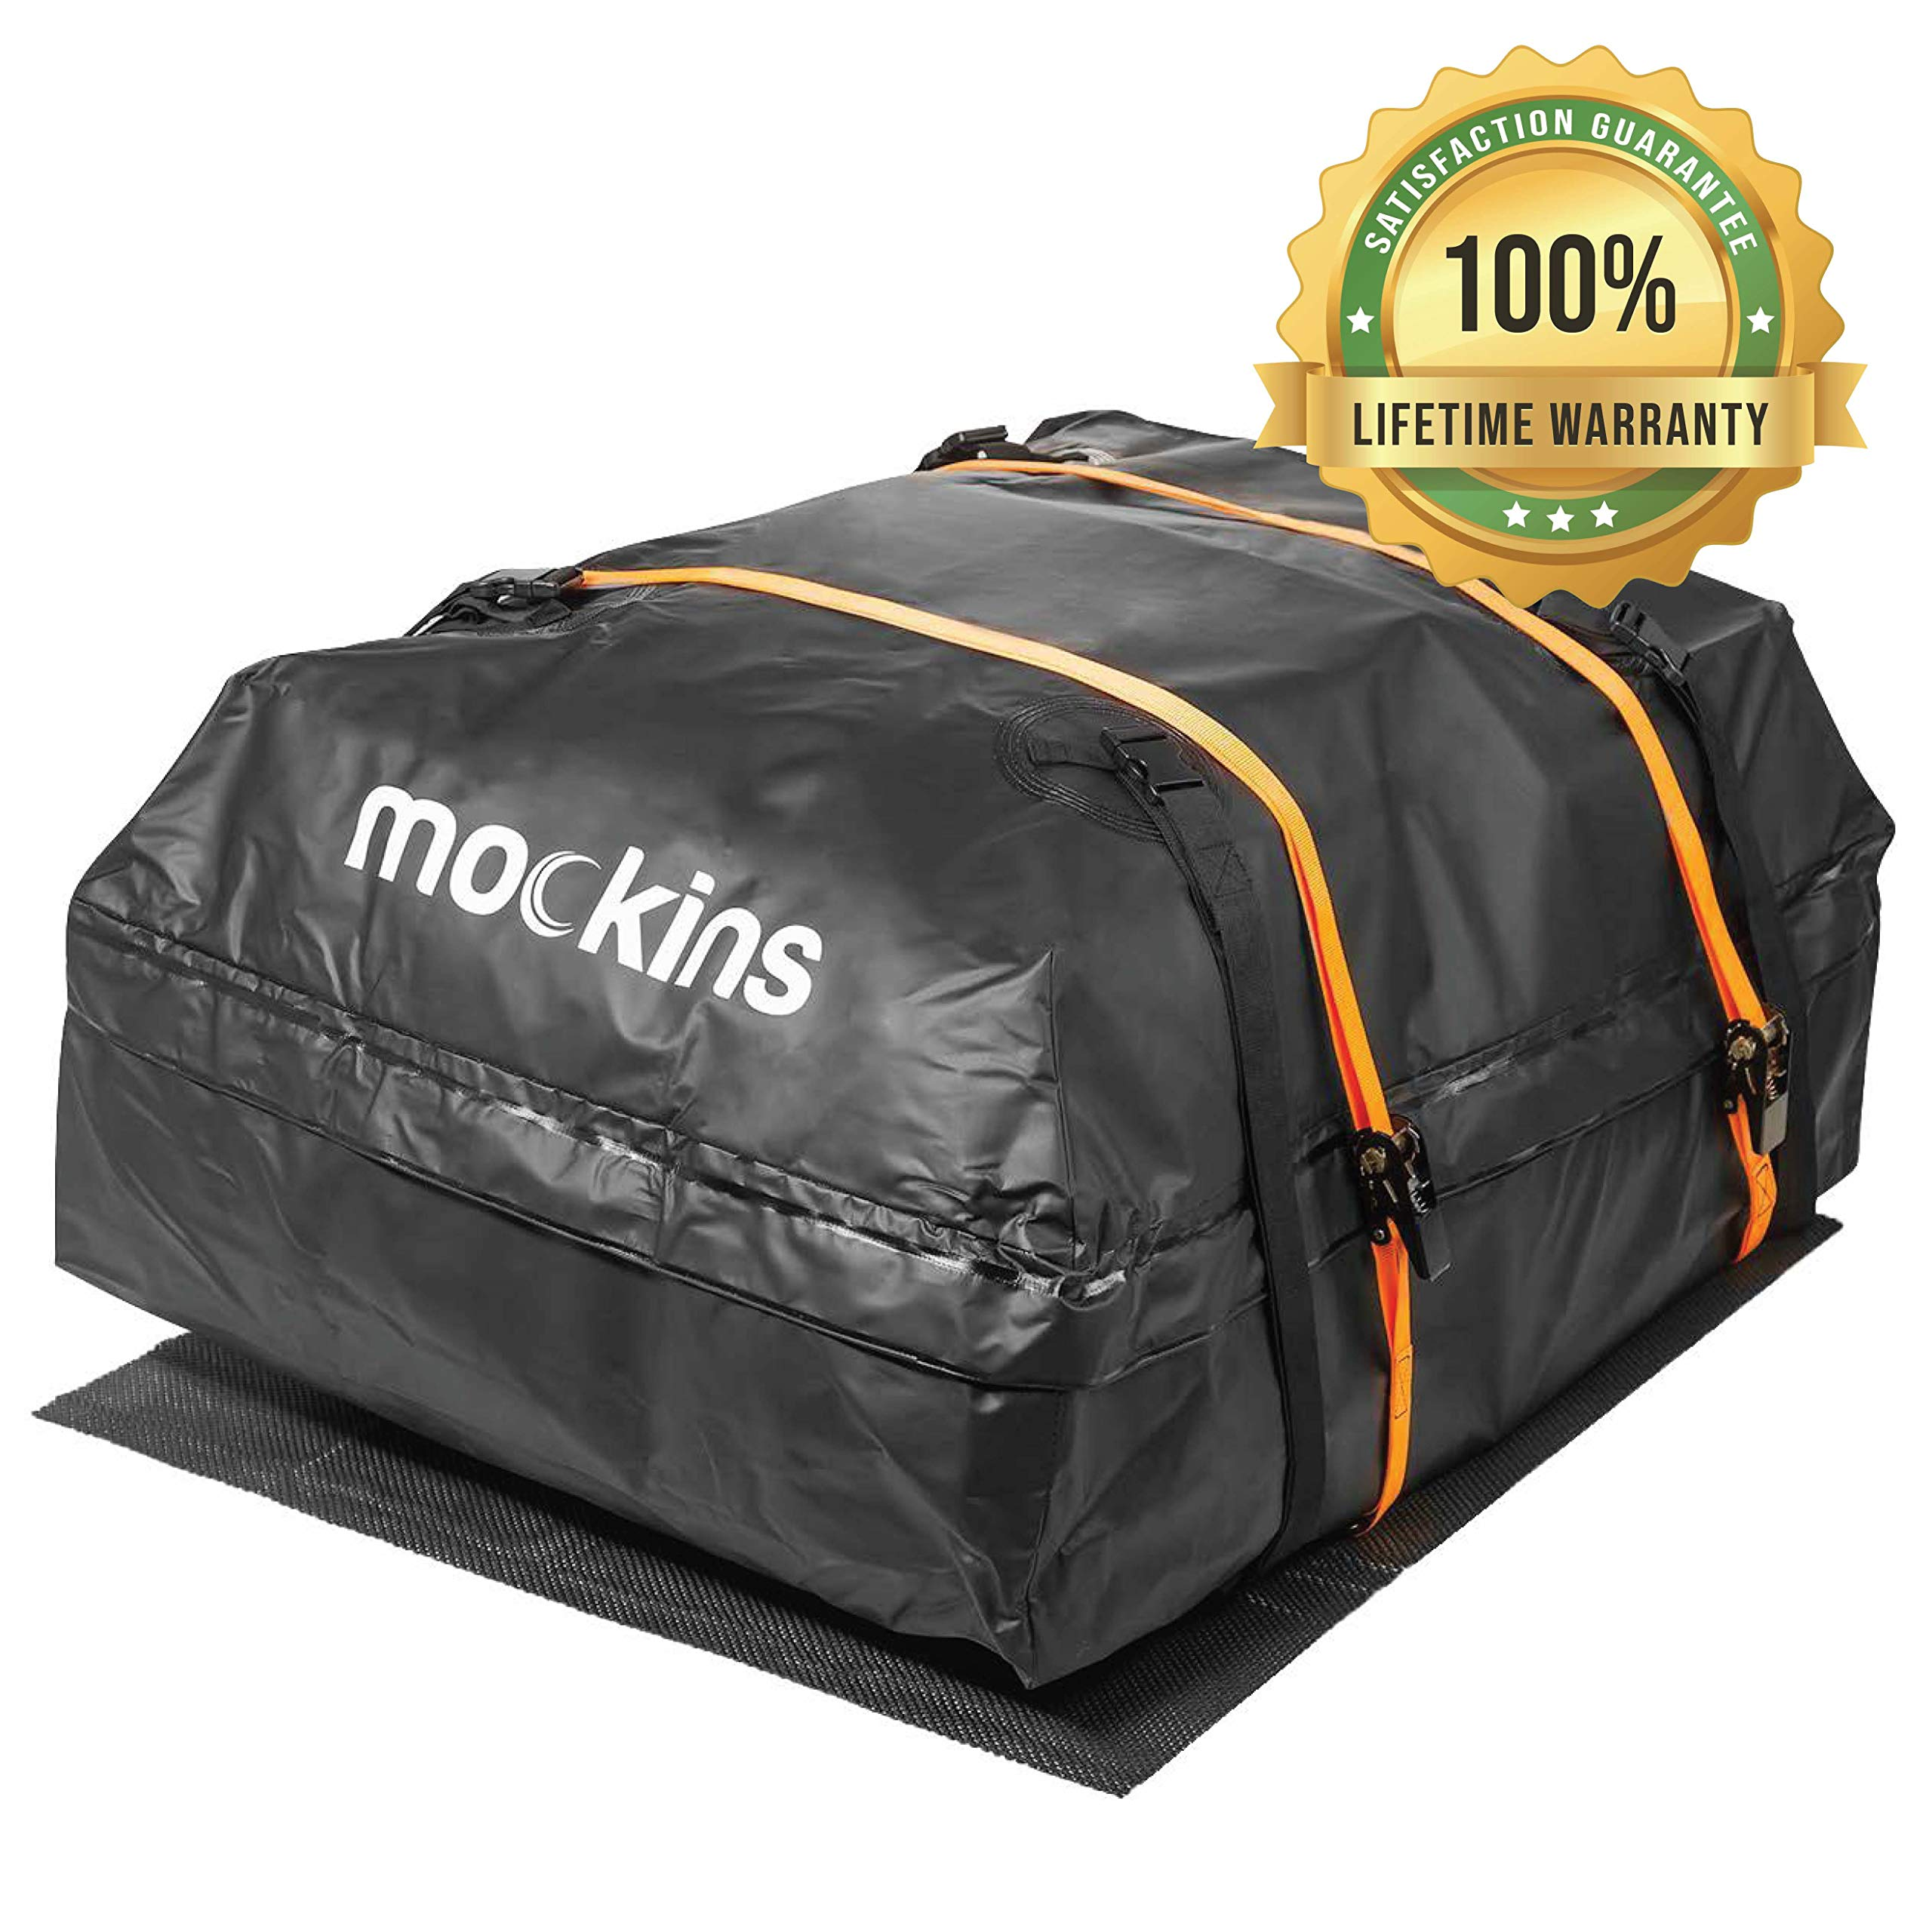 Mockins Waterproof Cargo Roof Bag Set with A Protective Car Roof Mat and 2 Extra Ratchet Straps   The Car Top Carrier Bag is Made from Heavy Duty Abrasion Resistant Vinyl and has 15 Cubic ft of Space by Mockins